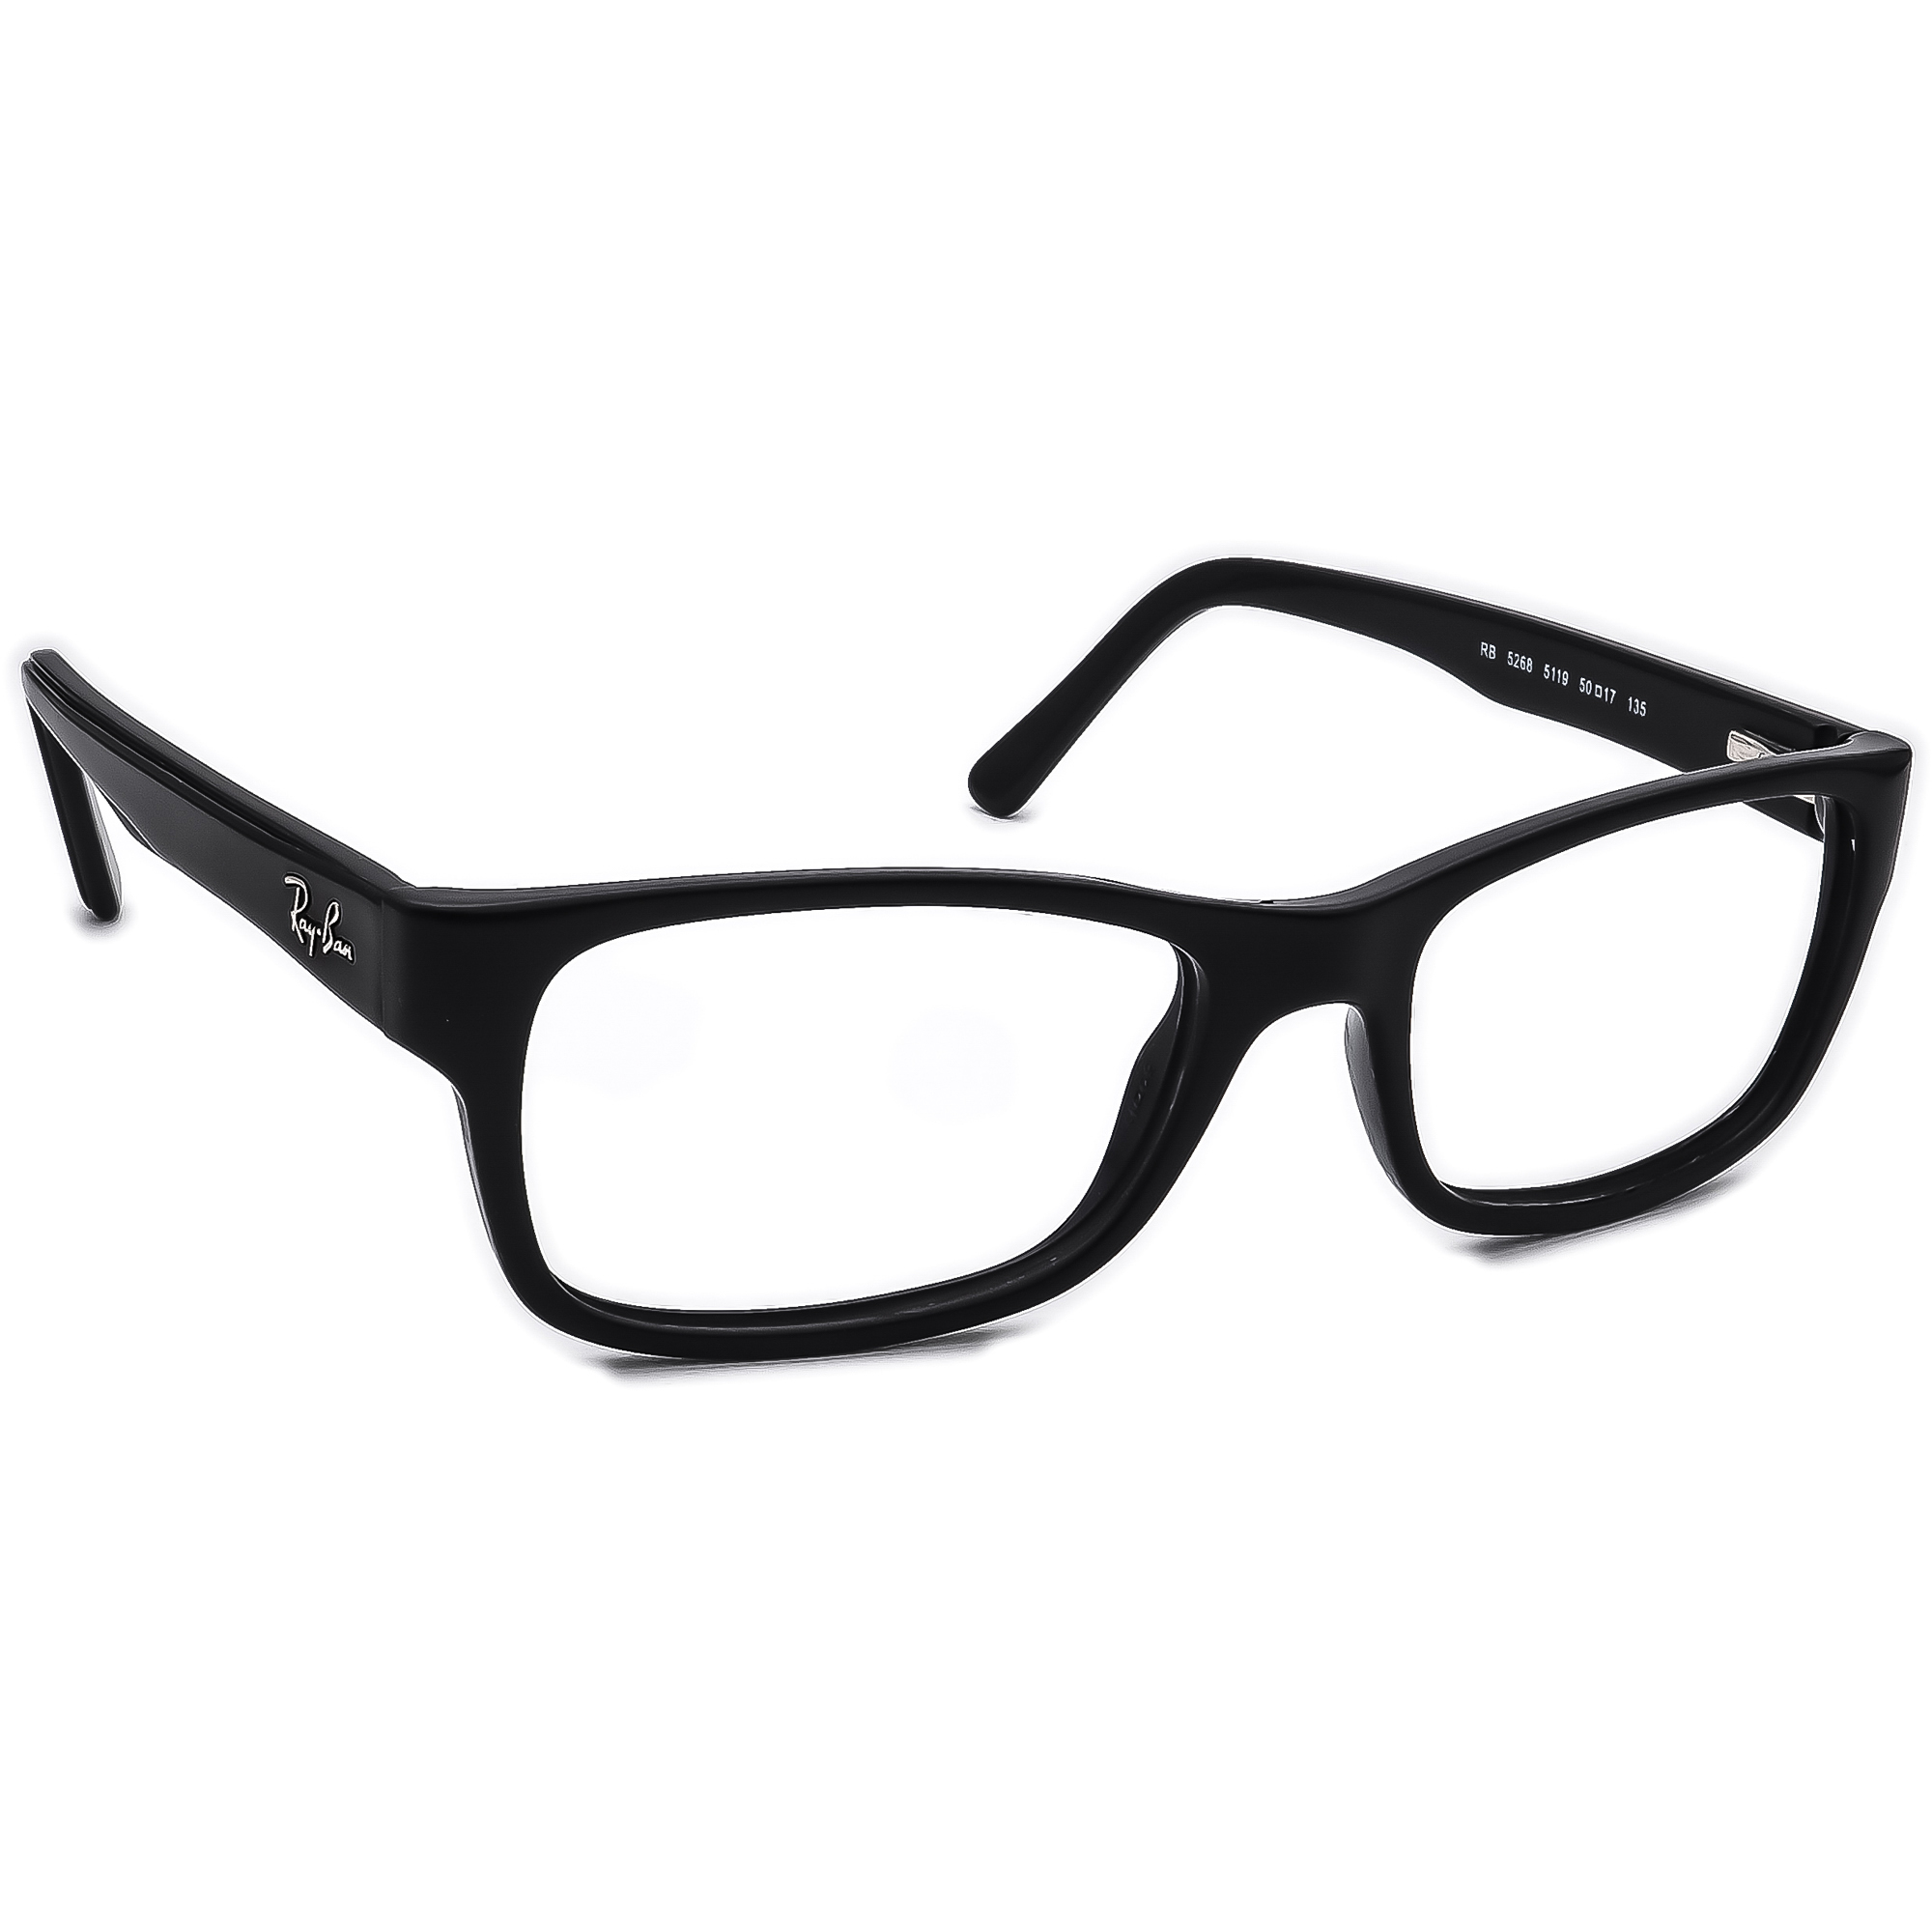 Ray Ban Eyeglasses RB 5268 5119 Black Rectangular Frame 50[]17 135